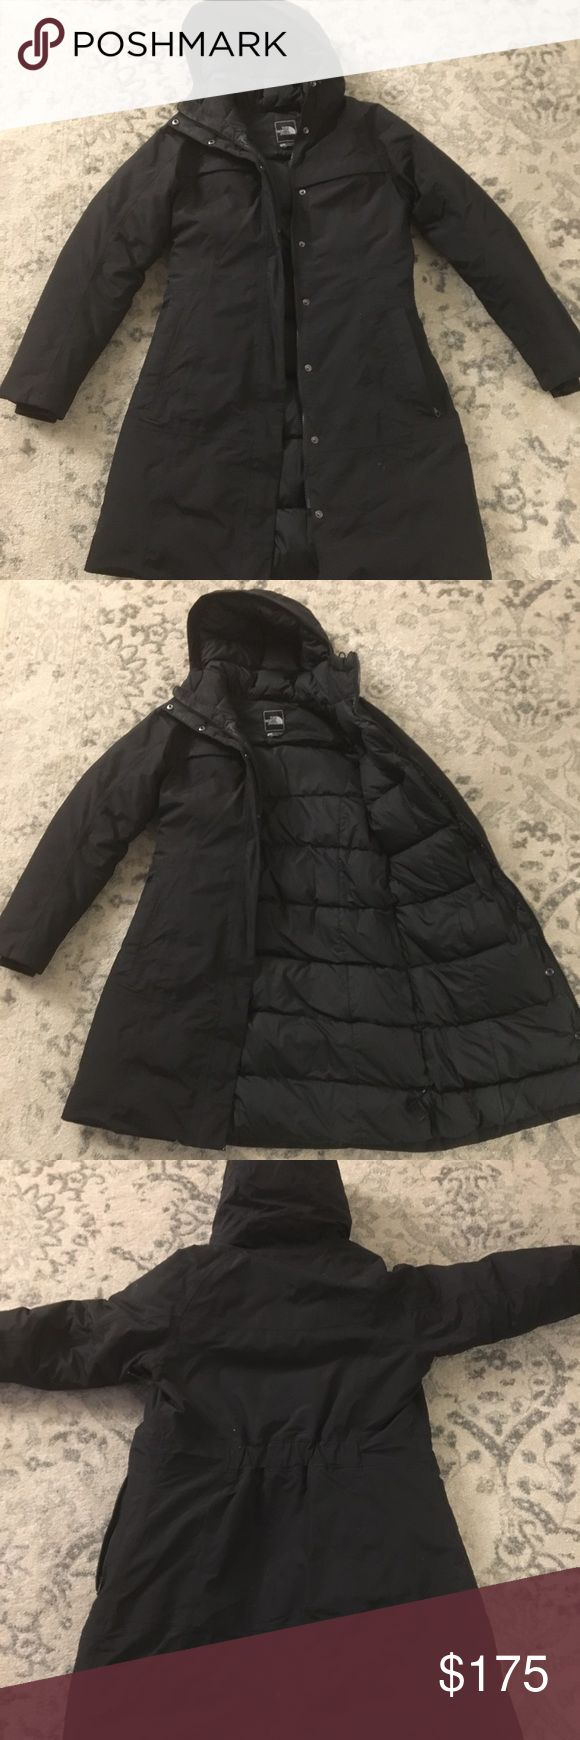 North Face Arctic Parka Black, size medium North Face Arctic Parka. Very warm winter coat in great condition! North Face Jackets & Coats Puffers